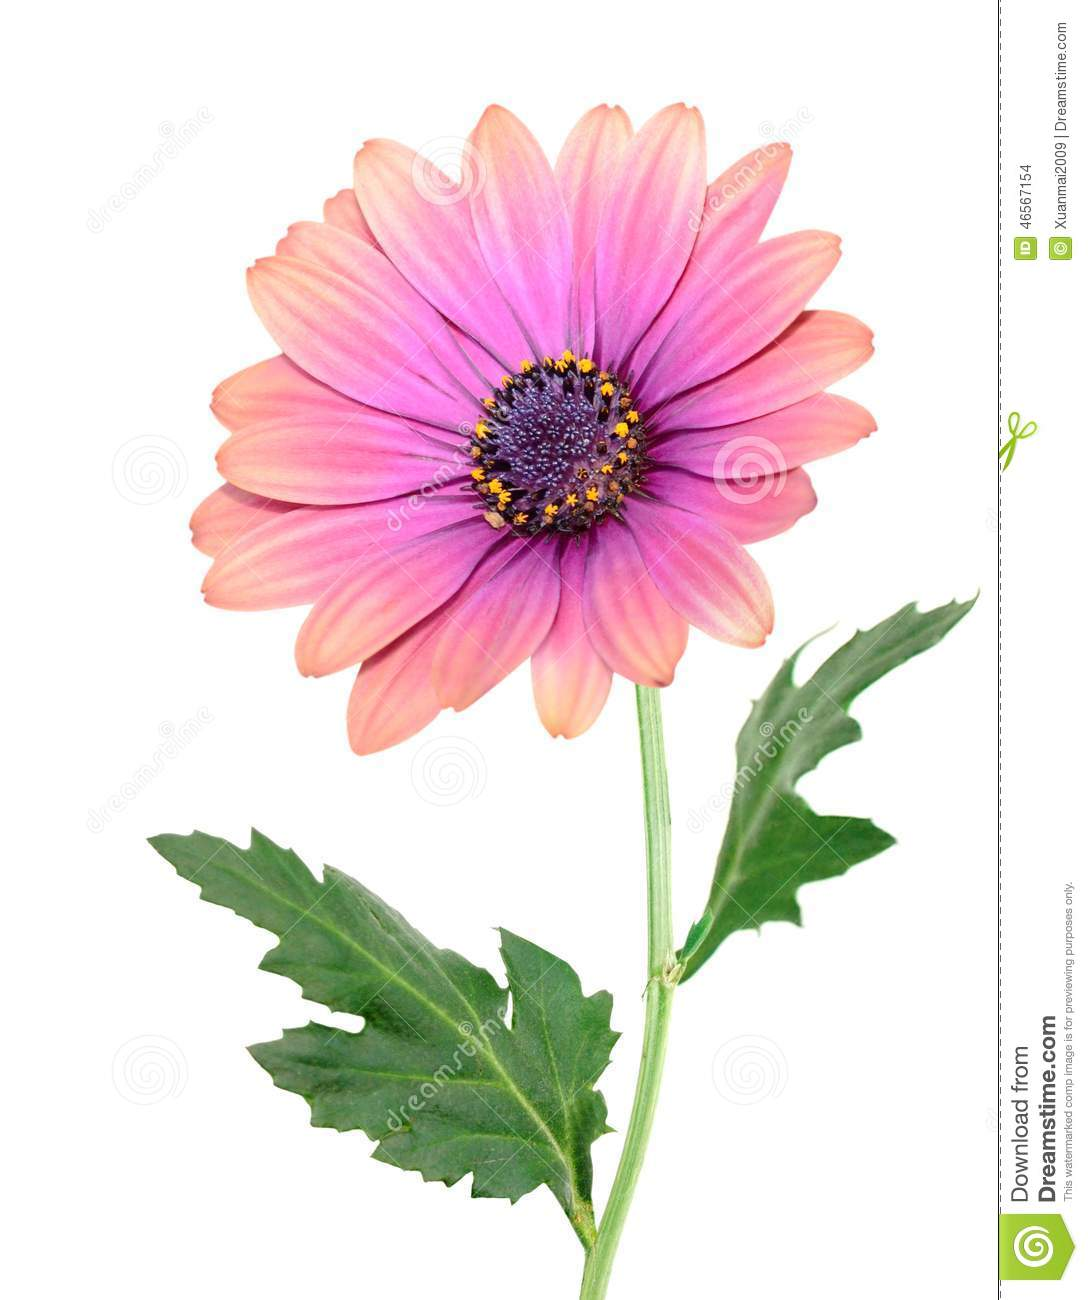 A aster daisy flower stock photo image of open elegant 46567154 download comp izmirmasajfo